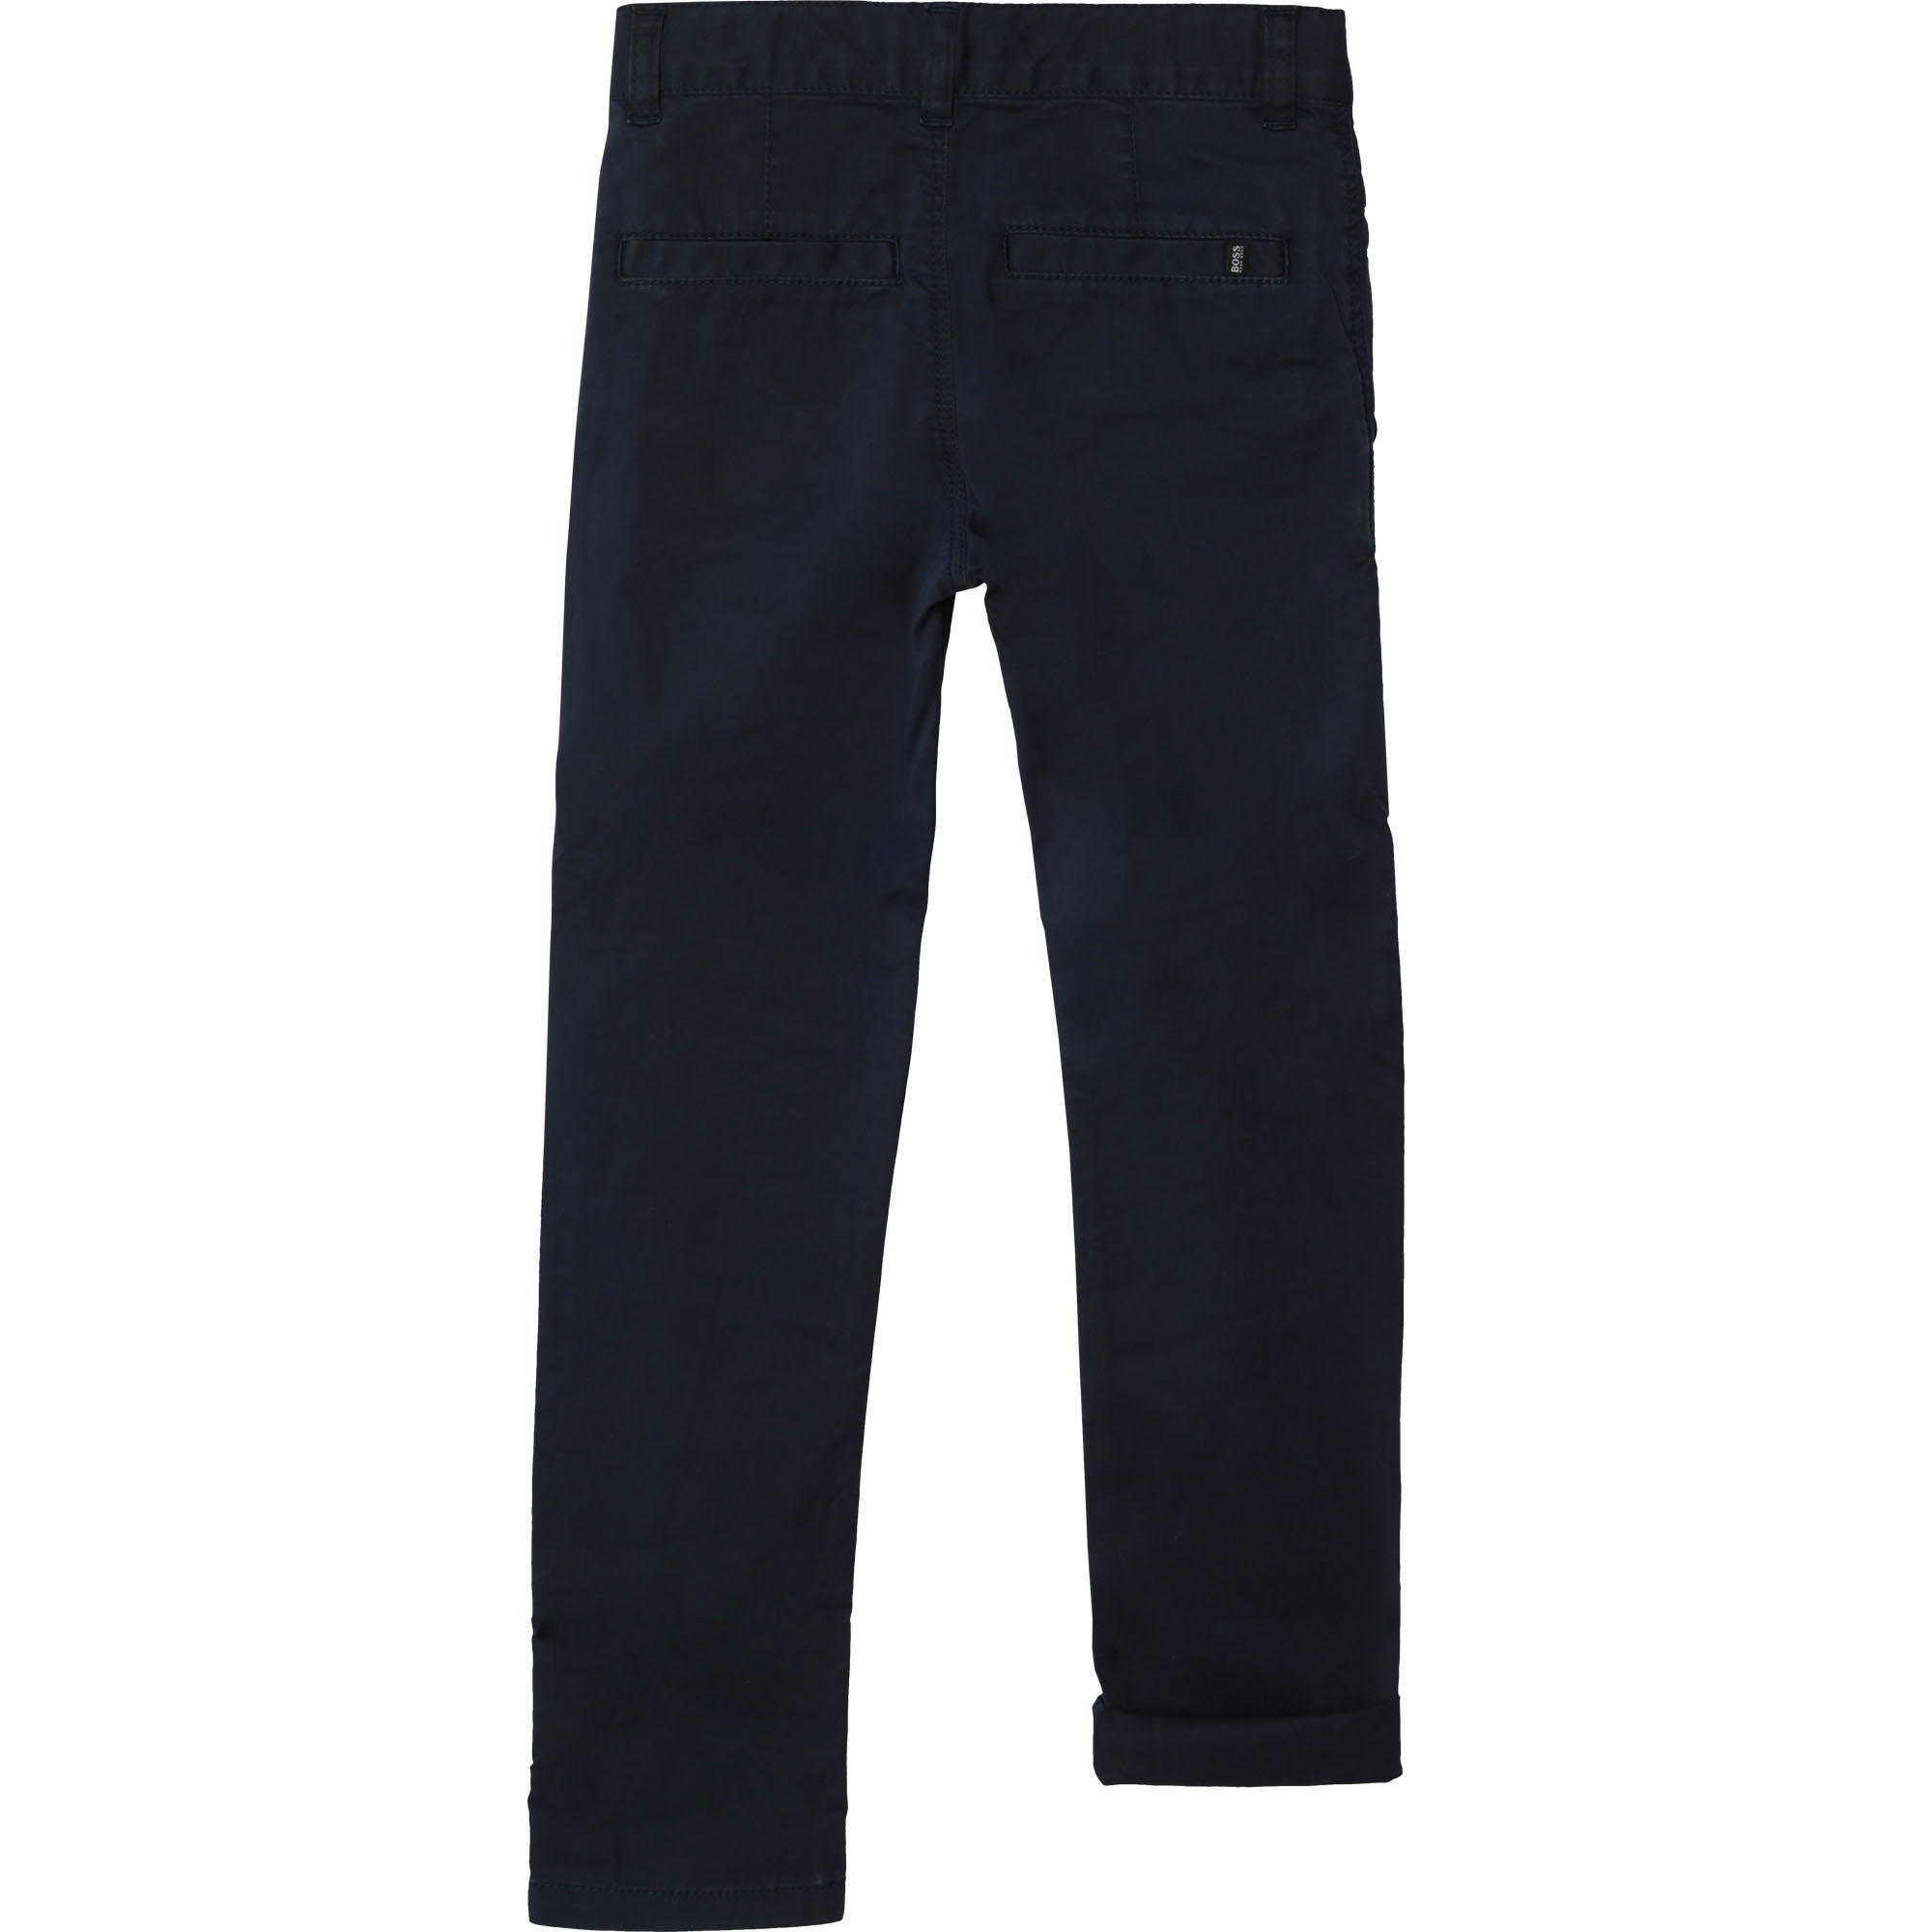 Cotton twill pants BOSS for BOY